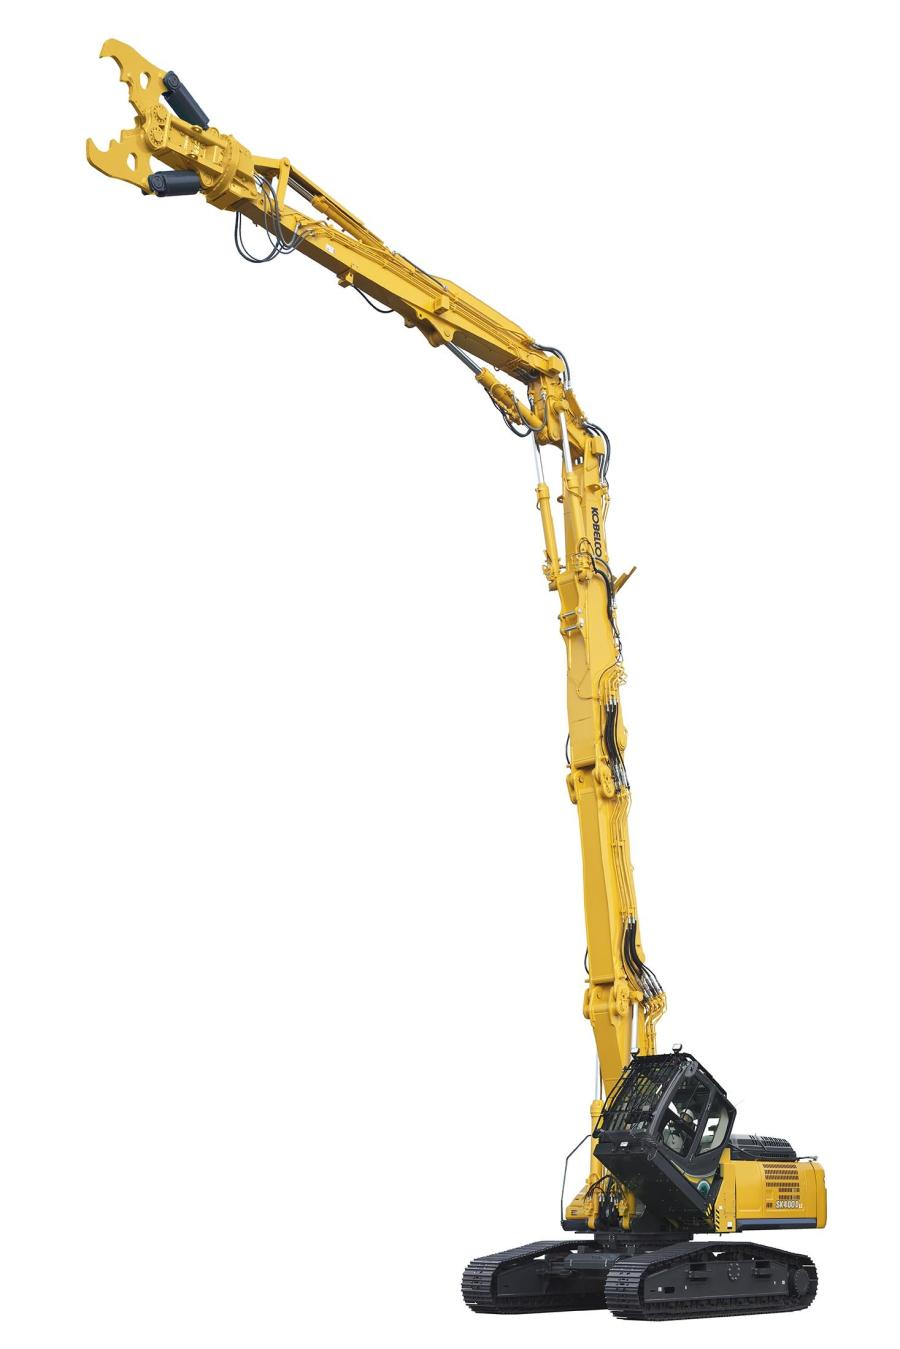 The Kobelco SK400D and SK550D can demolish buildings up to nine stories high from the ground.